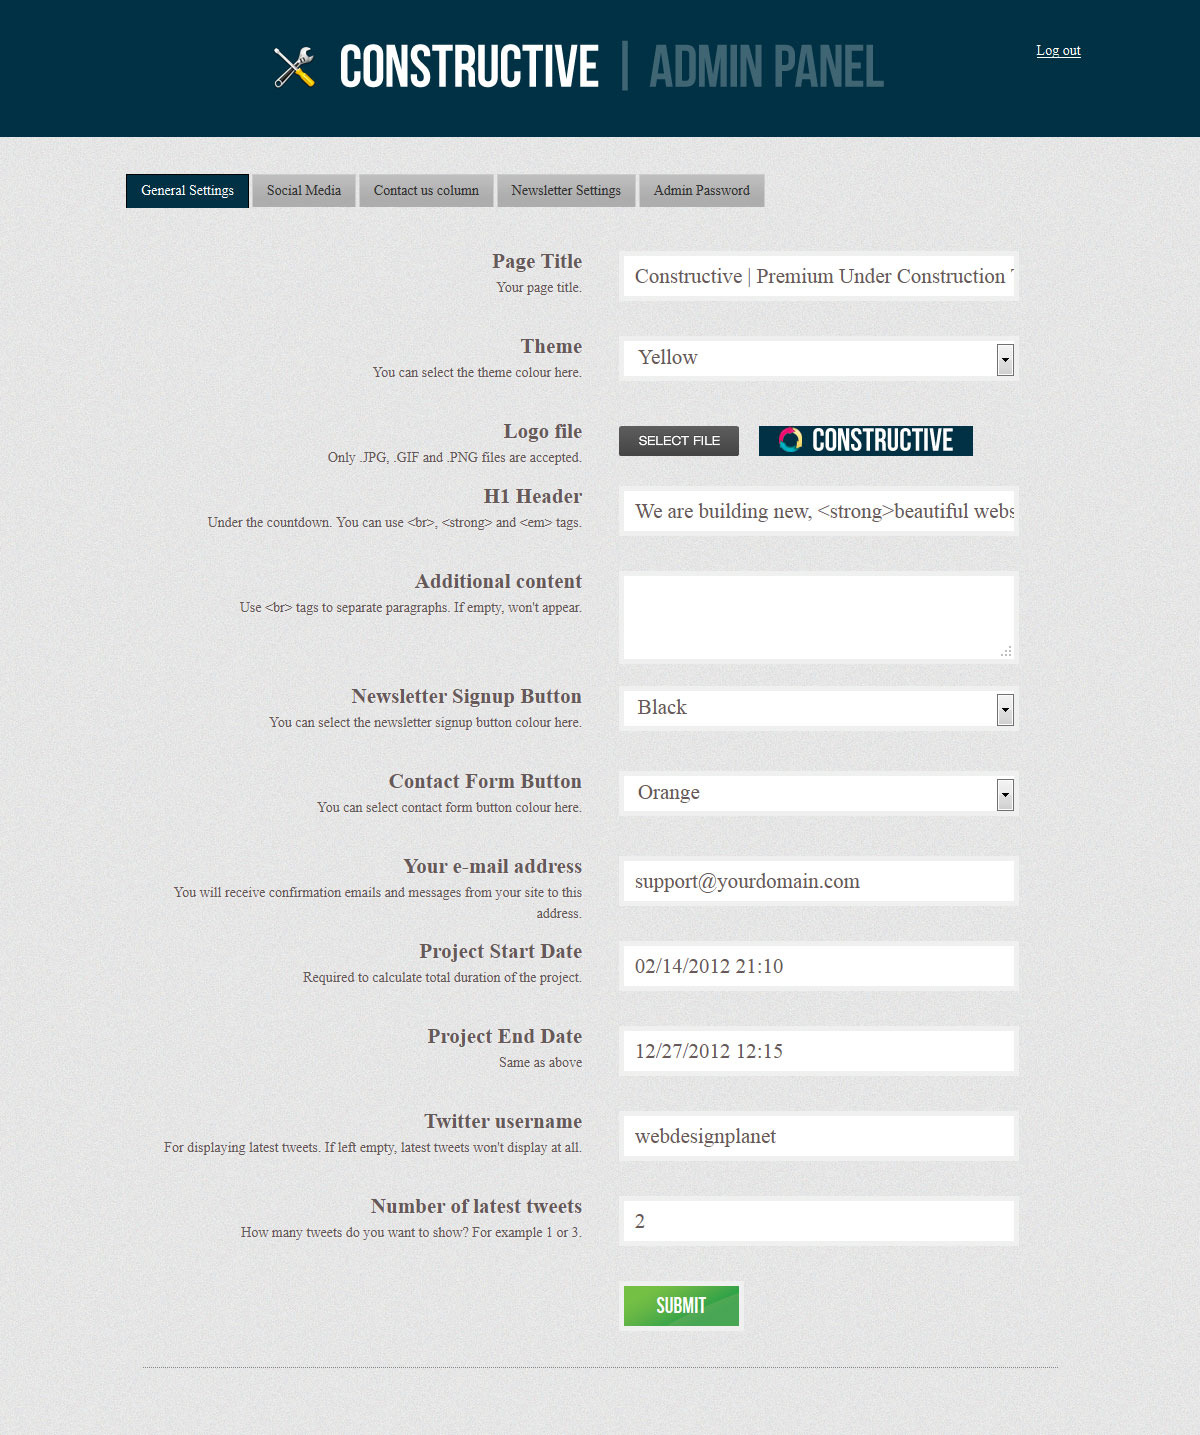 Constructive - Responsive Under Construction Page - COnstructive - Admin Panel, General Settings